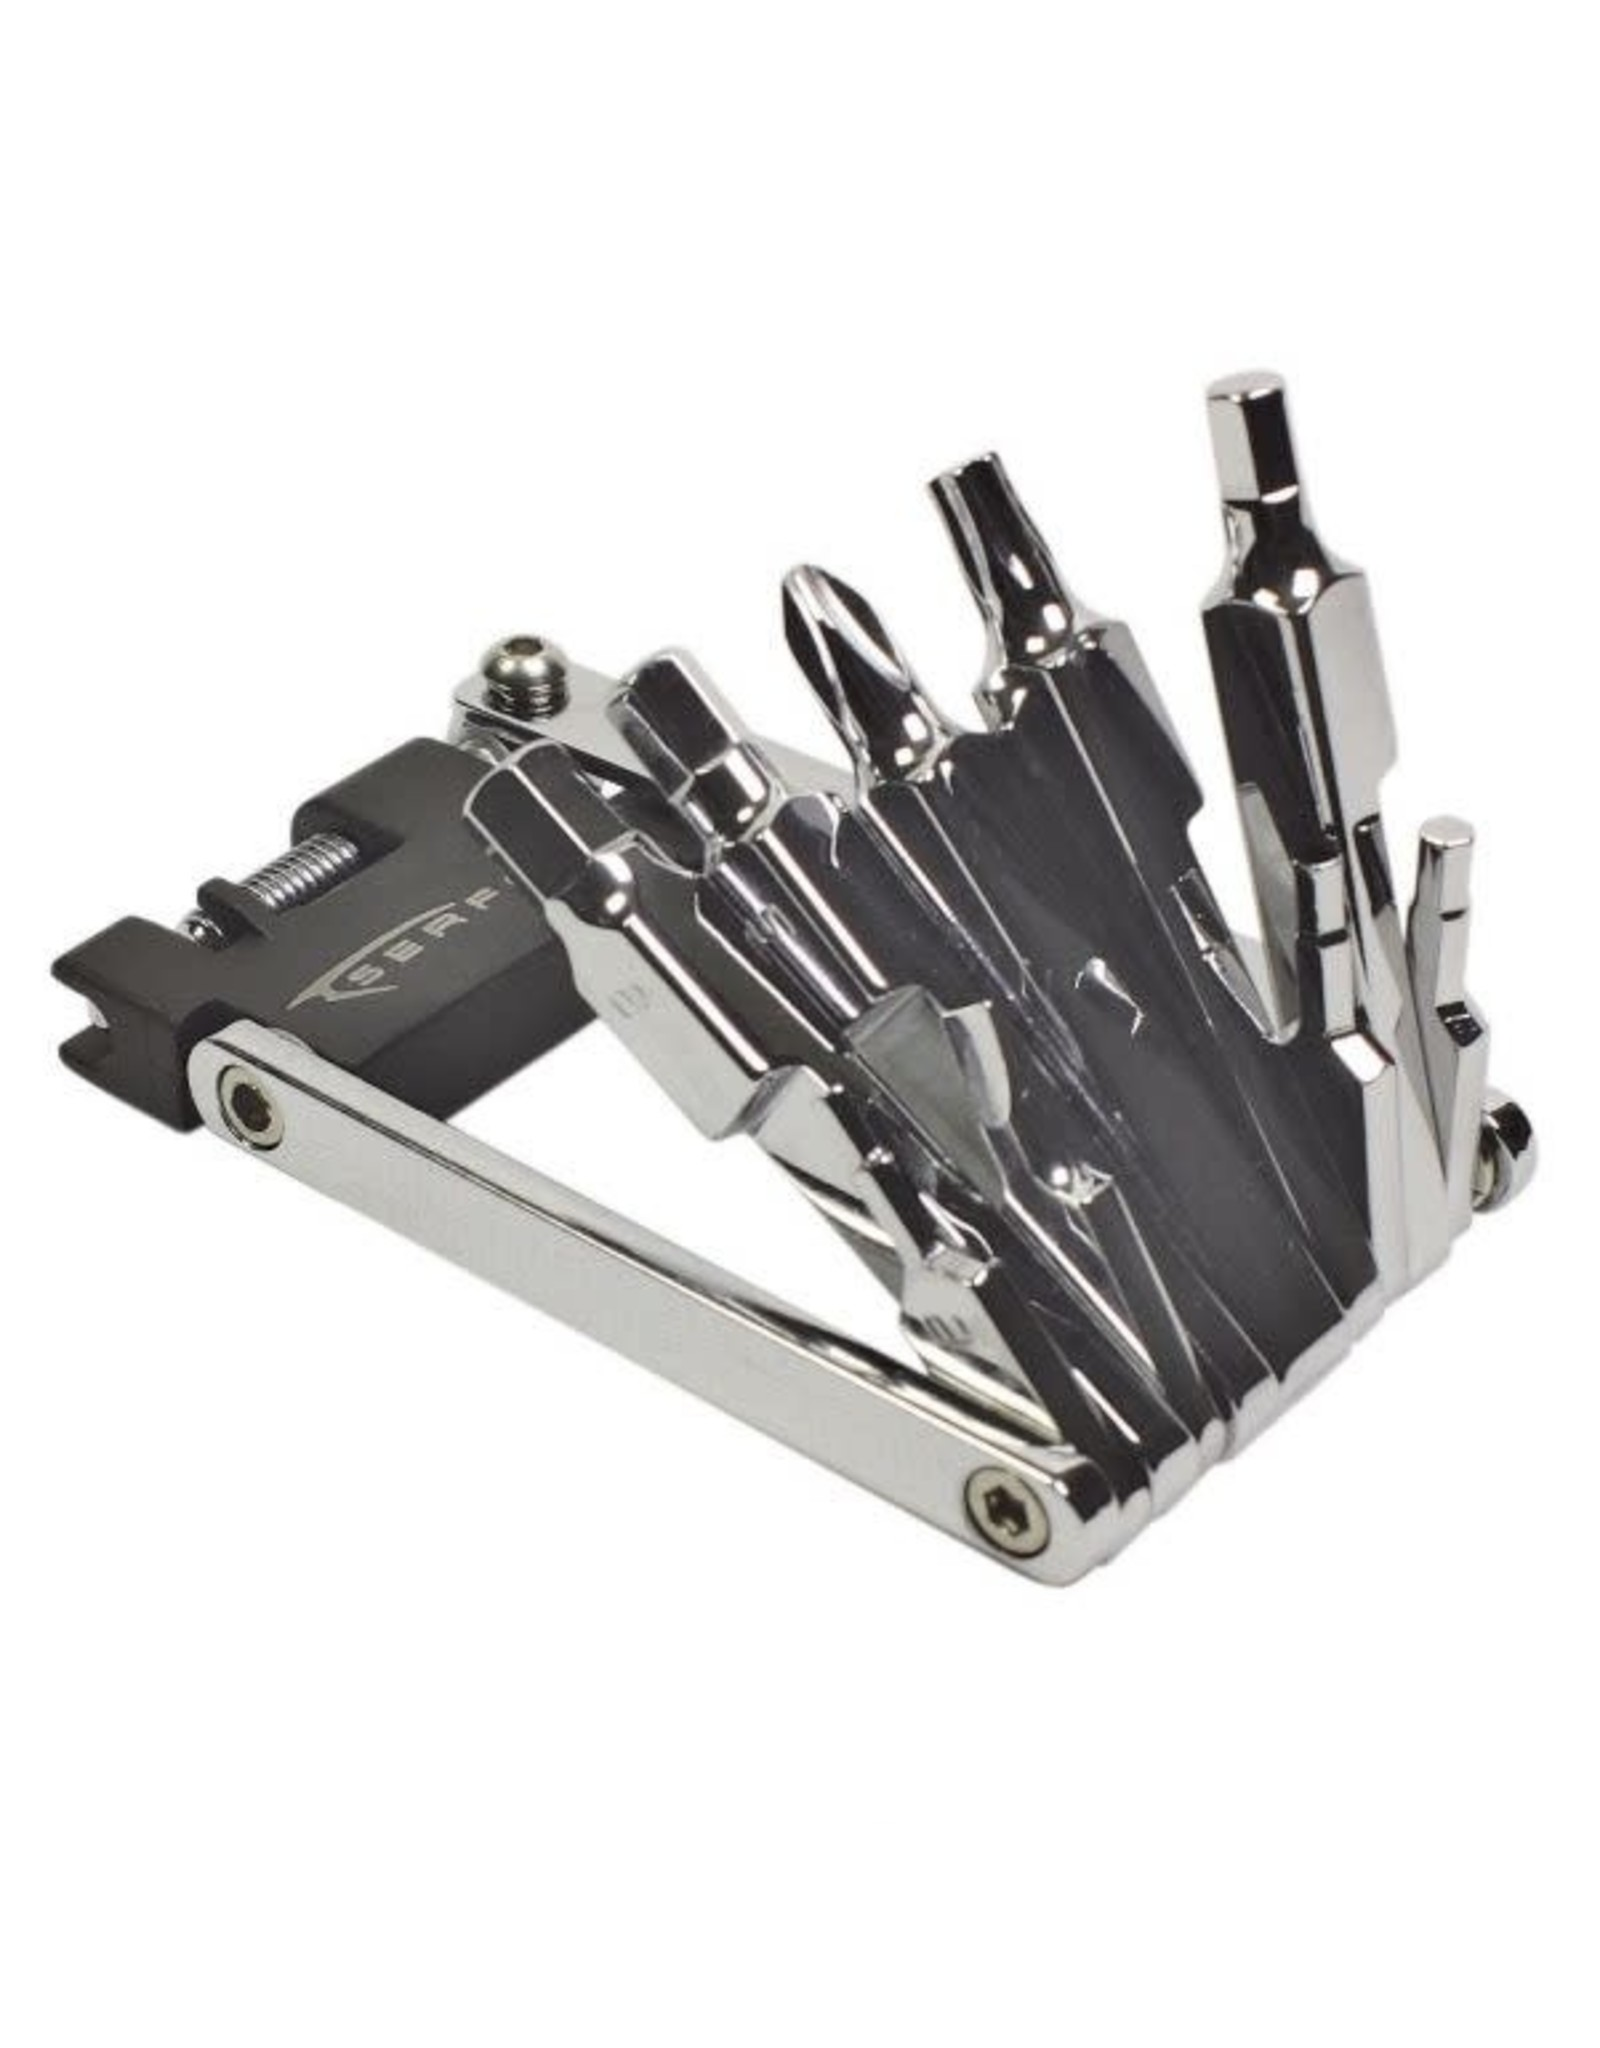 Serfas CHROME SLIMLINE MINI TOOL